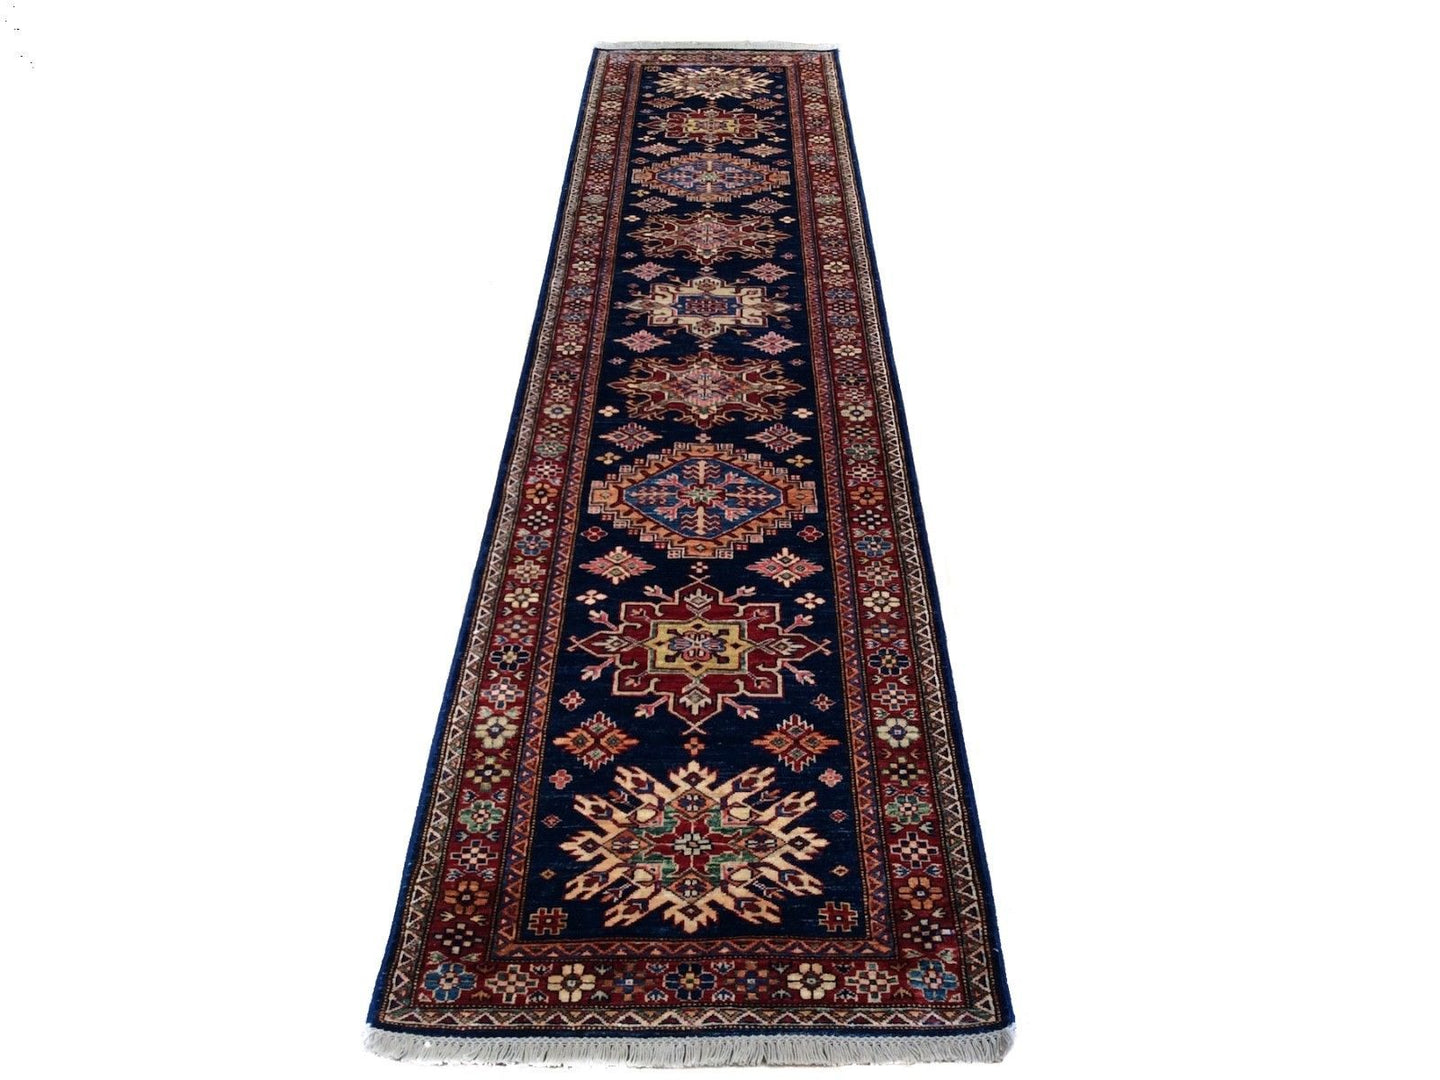 Kazak Runner-Rug Geometric Design Hand-Knotted Hand-Woven 100-Percent Wool